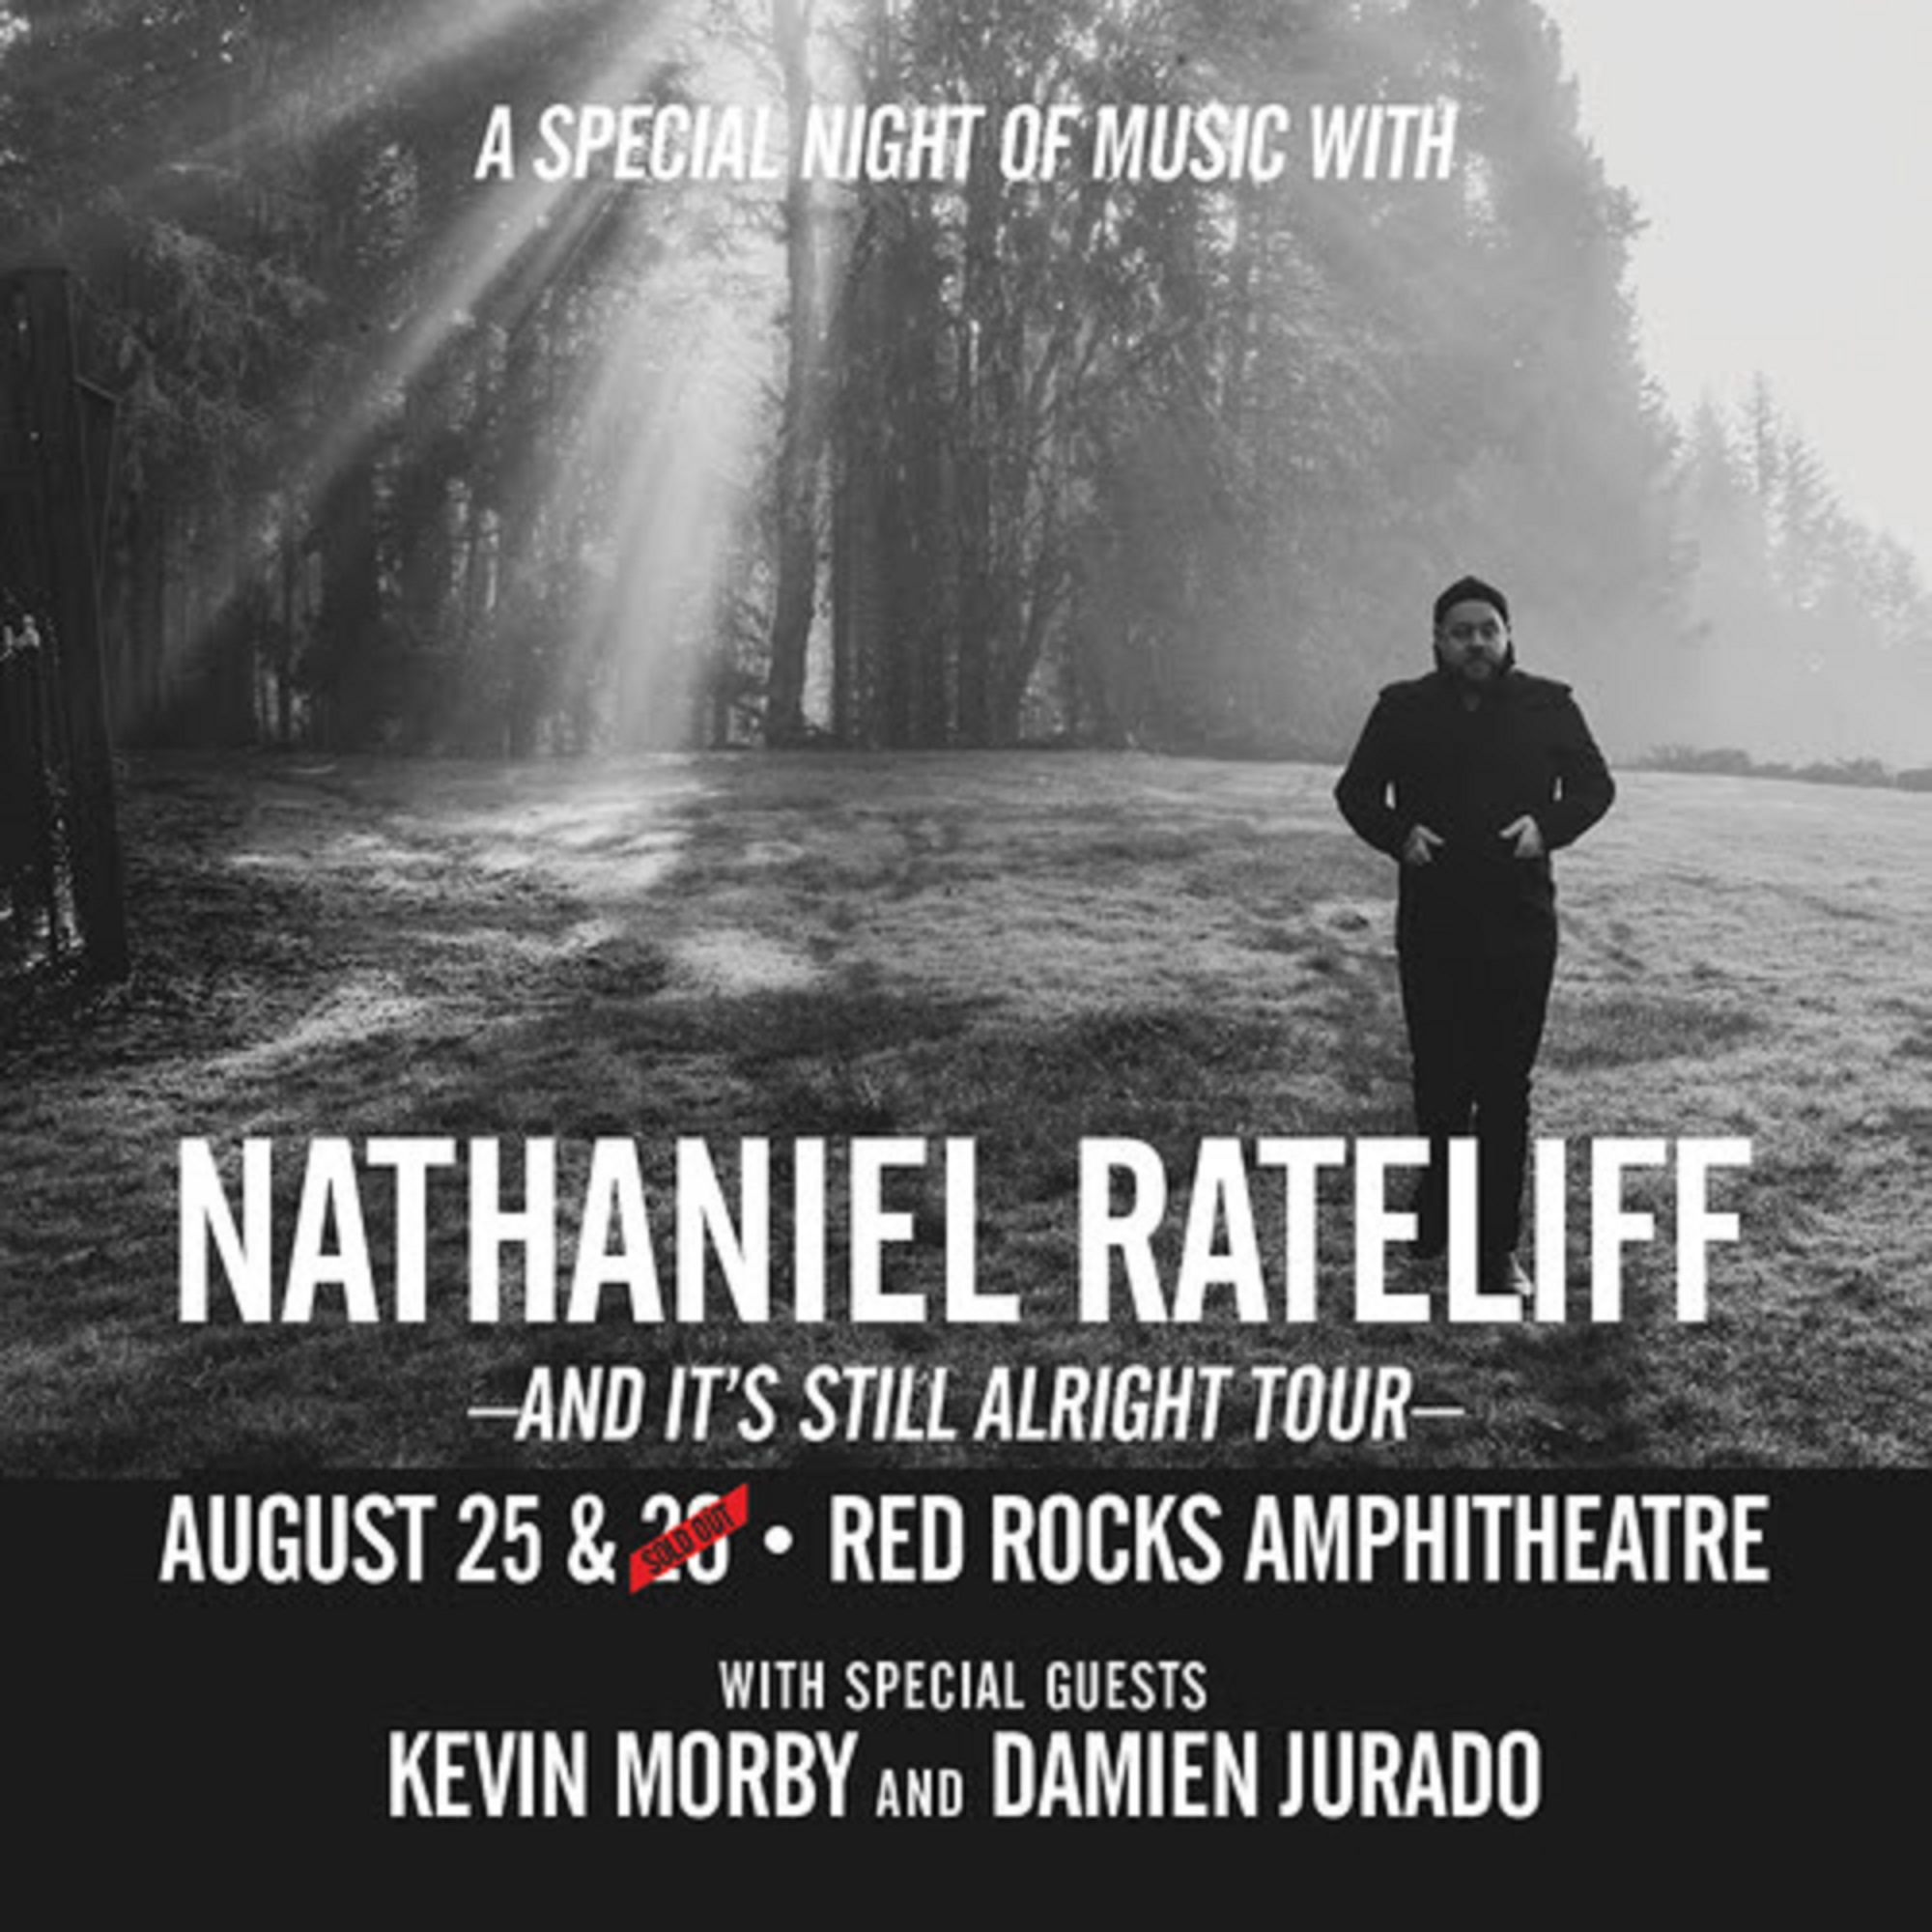 Nathaniel Rateliff confirms second night at Red Rocks on August 25th